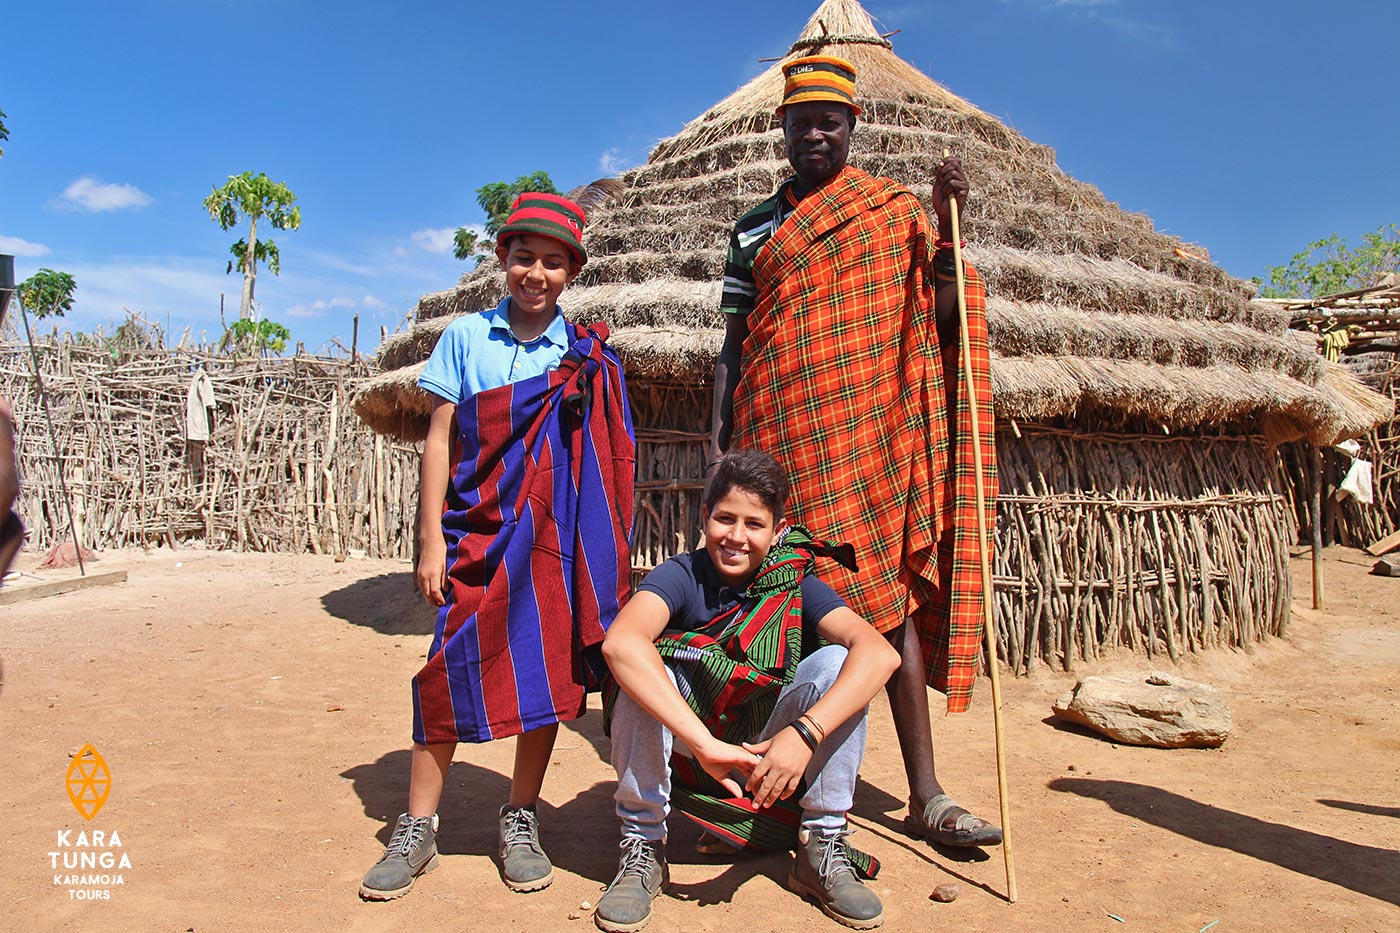 kara-tunga-karamoja-tours-travel-safari-children-13